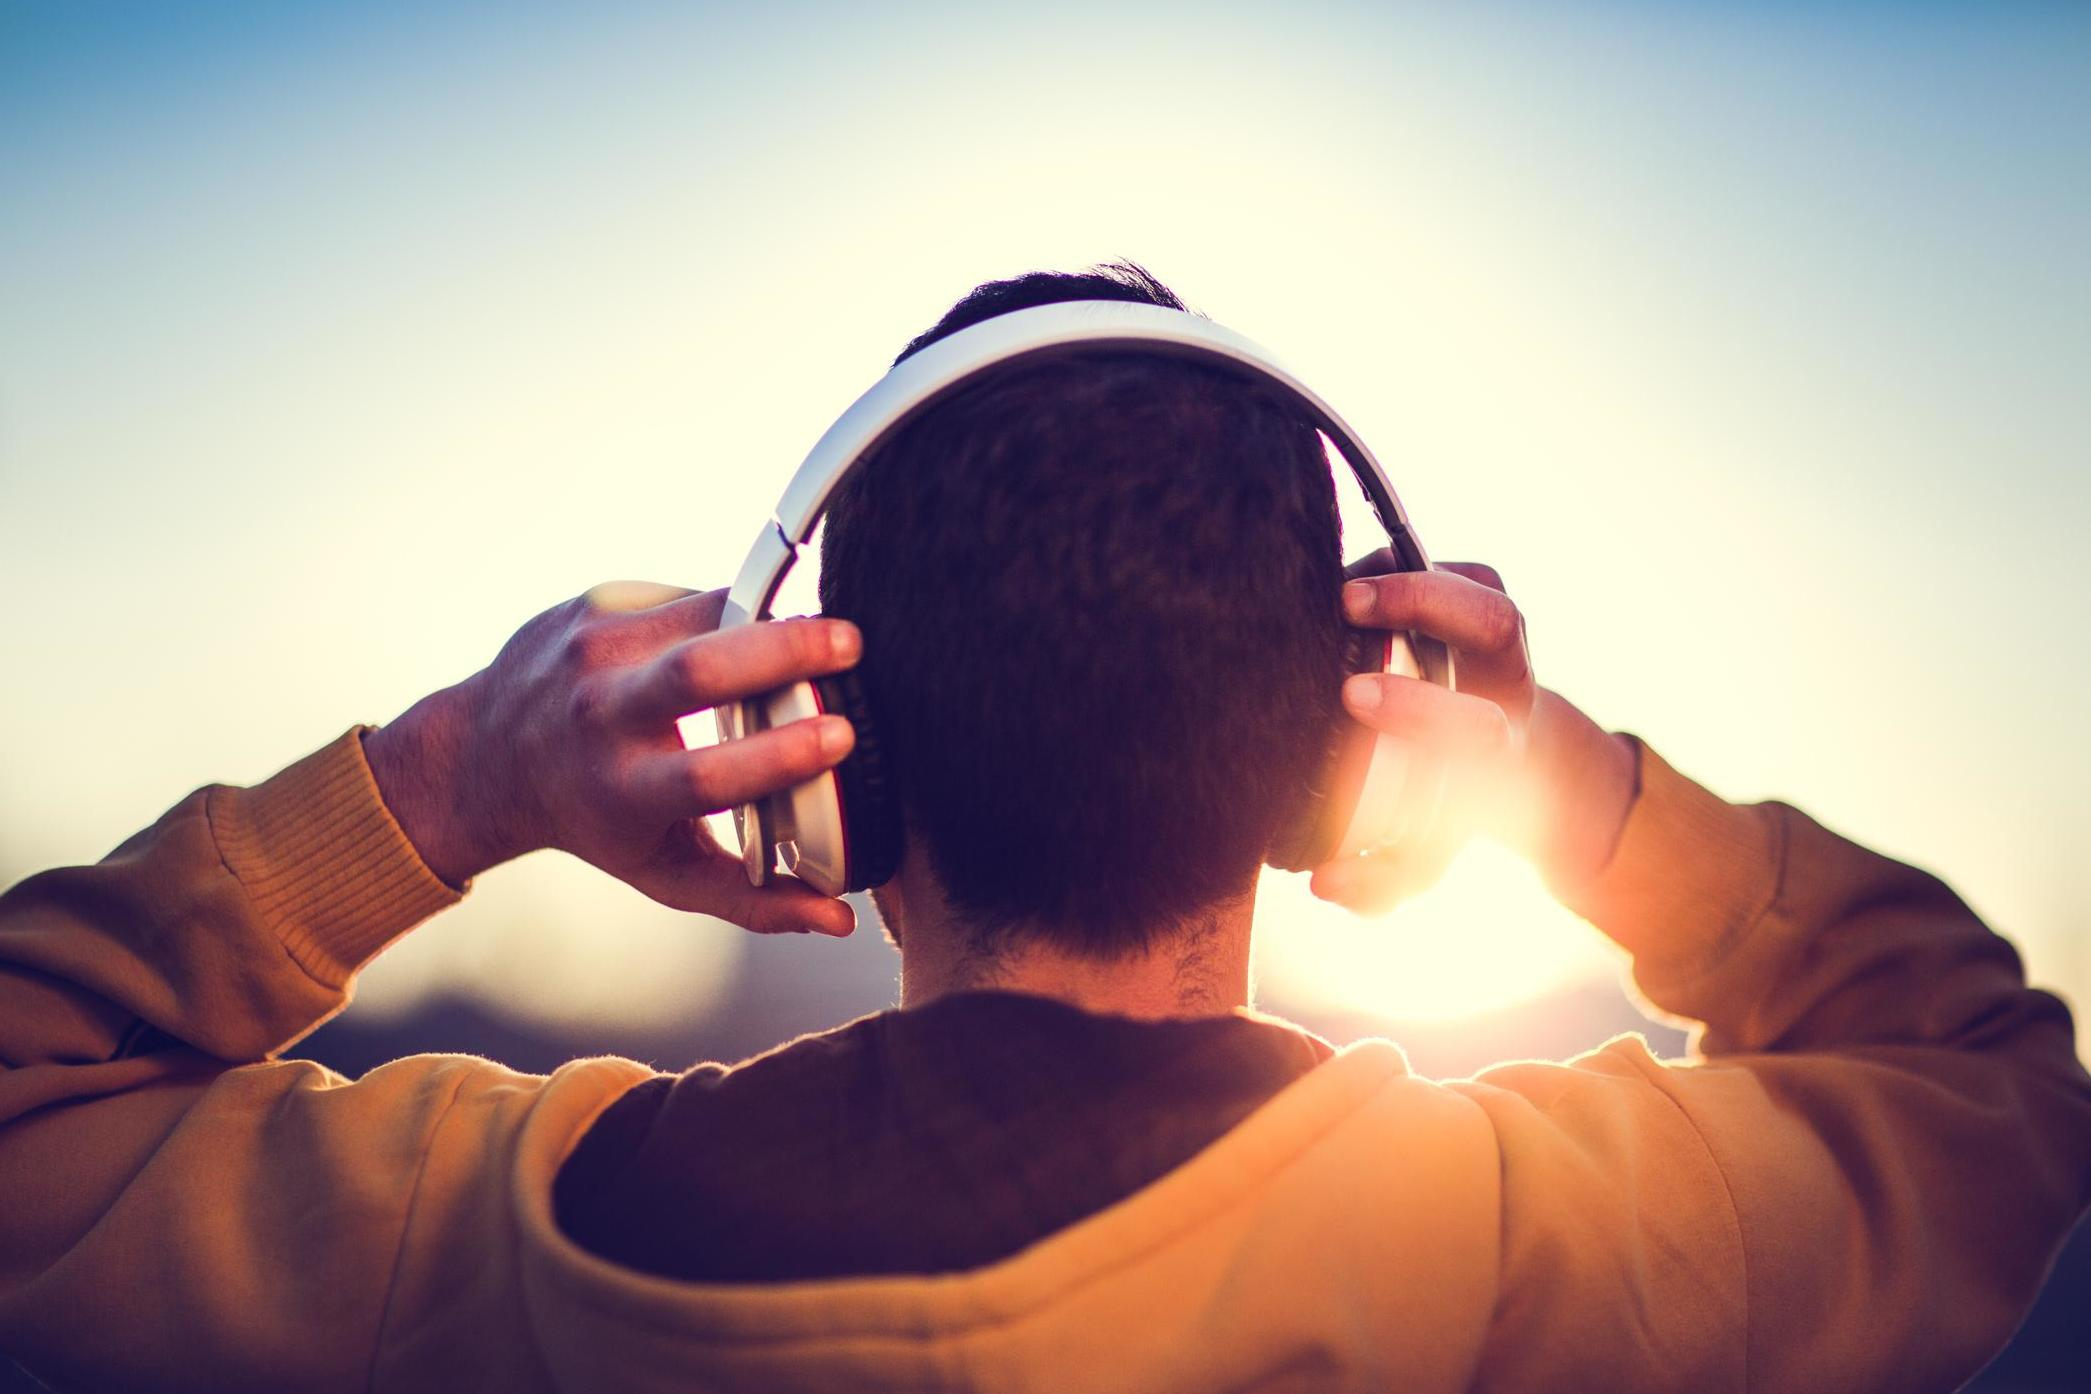 If music gives you chills your brain might be special, research finds